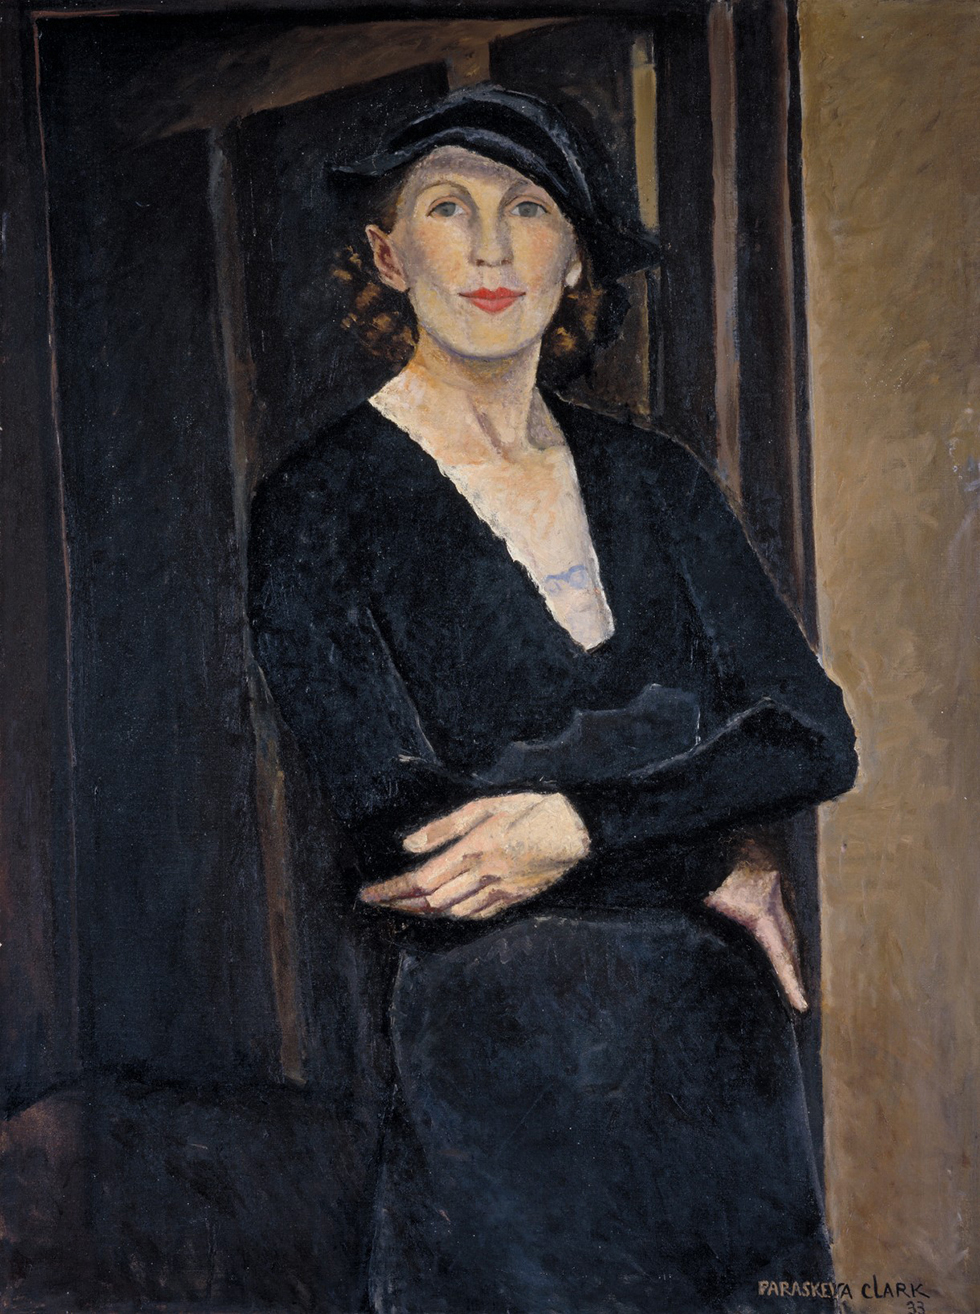 Paraskeva Clark, Myself, 1933, oil on canvas. National Gallery of Canada, Ottawa. Purchased 1974 (18311) Photo © NGC © Clive Clark, Estate of Paraskeva Clark. From the exhibition The Artist Herself: Self-Portraits by Canadian Historical Women Artists,2 May–9 August 2015. Photo via The Agnes Etherington Art Centre.